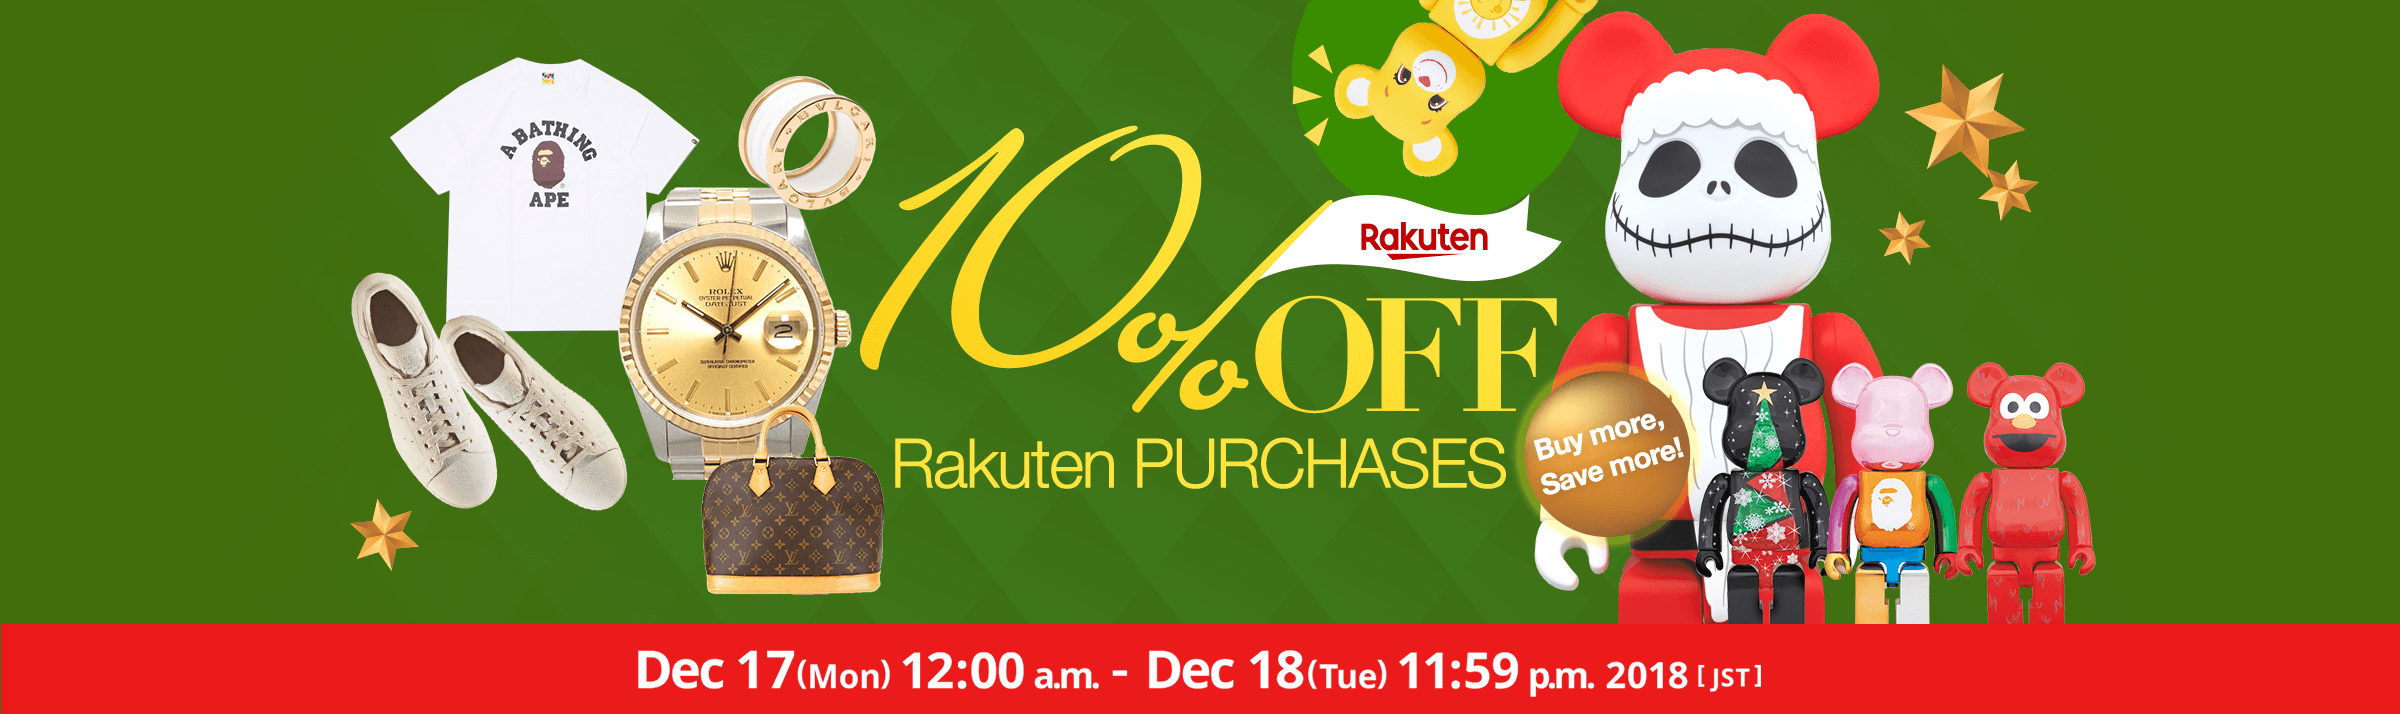 Earn 10% Cash Back on Rakuten Purchases